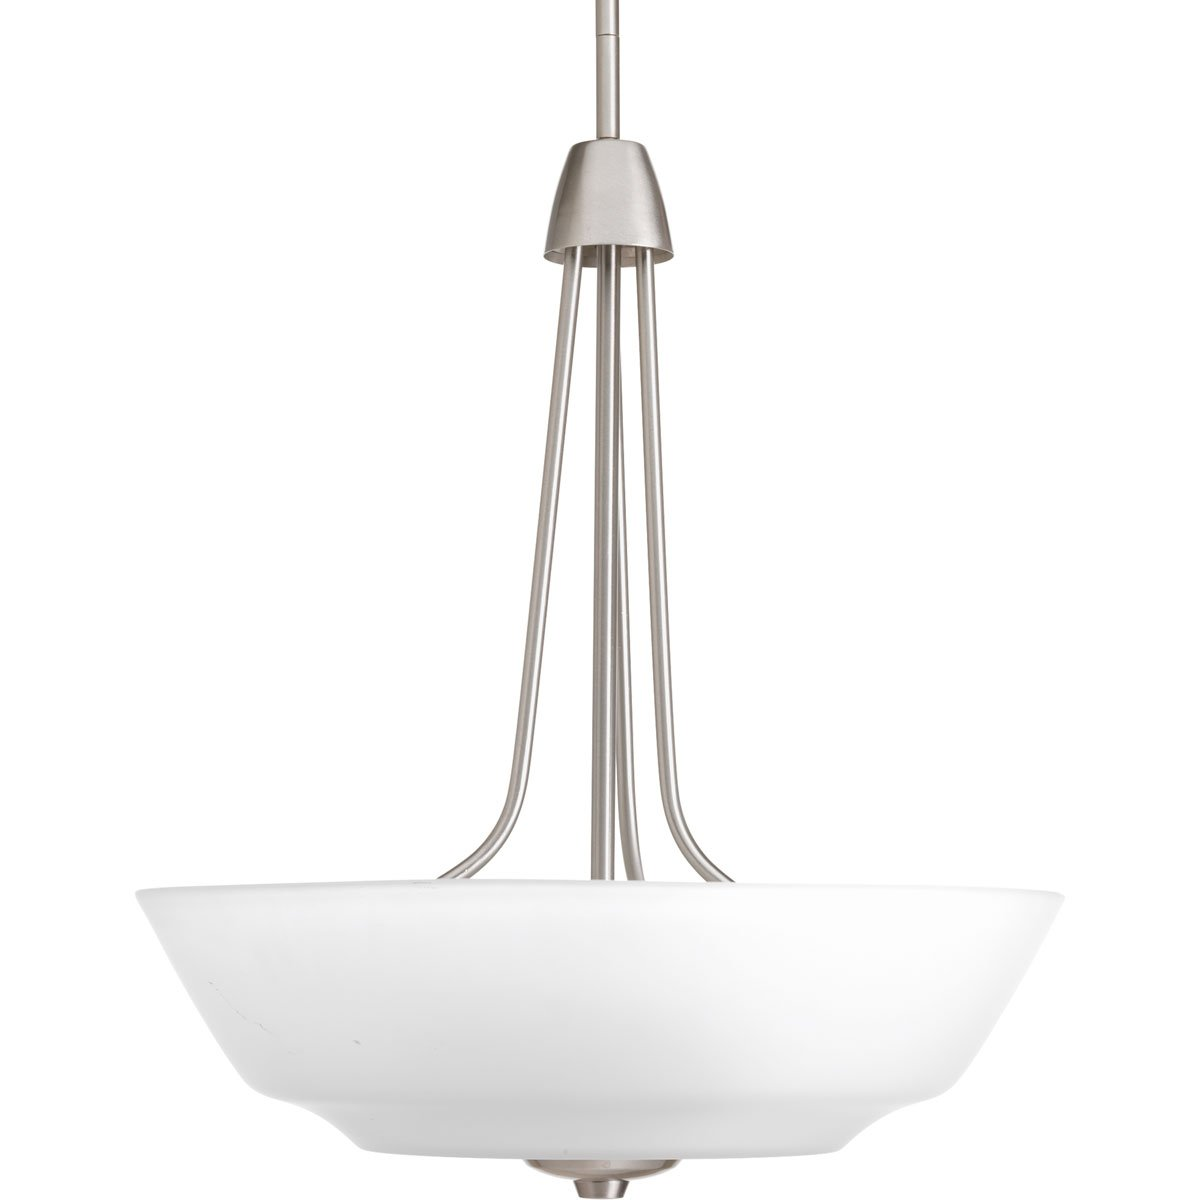 Progress Lighting P3949-09WB 3-Light Inverted Pendant with Bulb Etched Glass Bowl